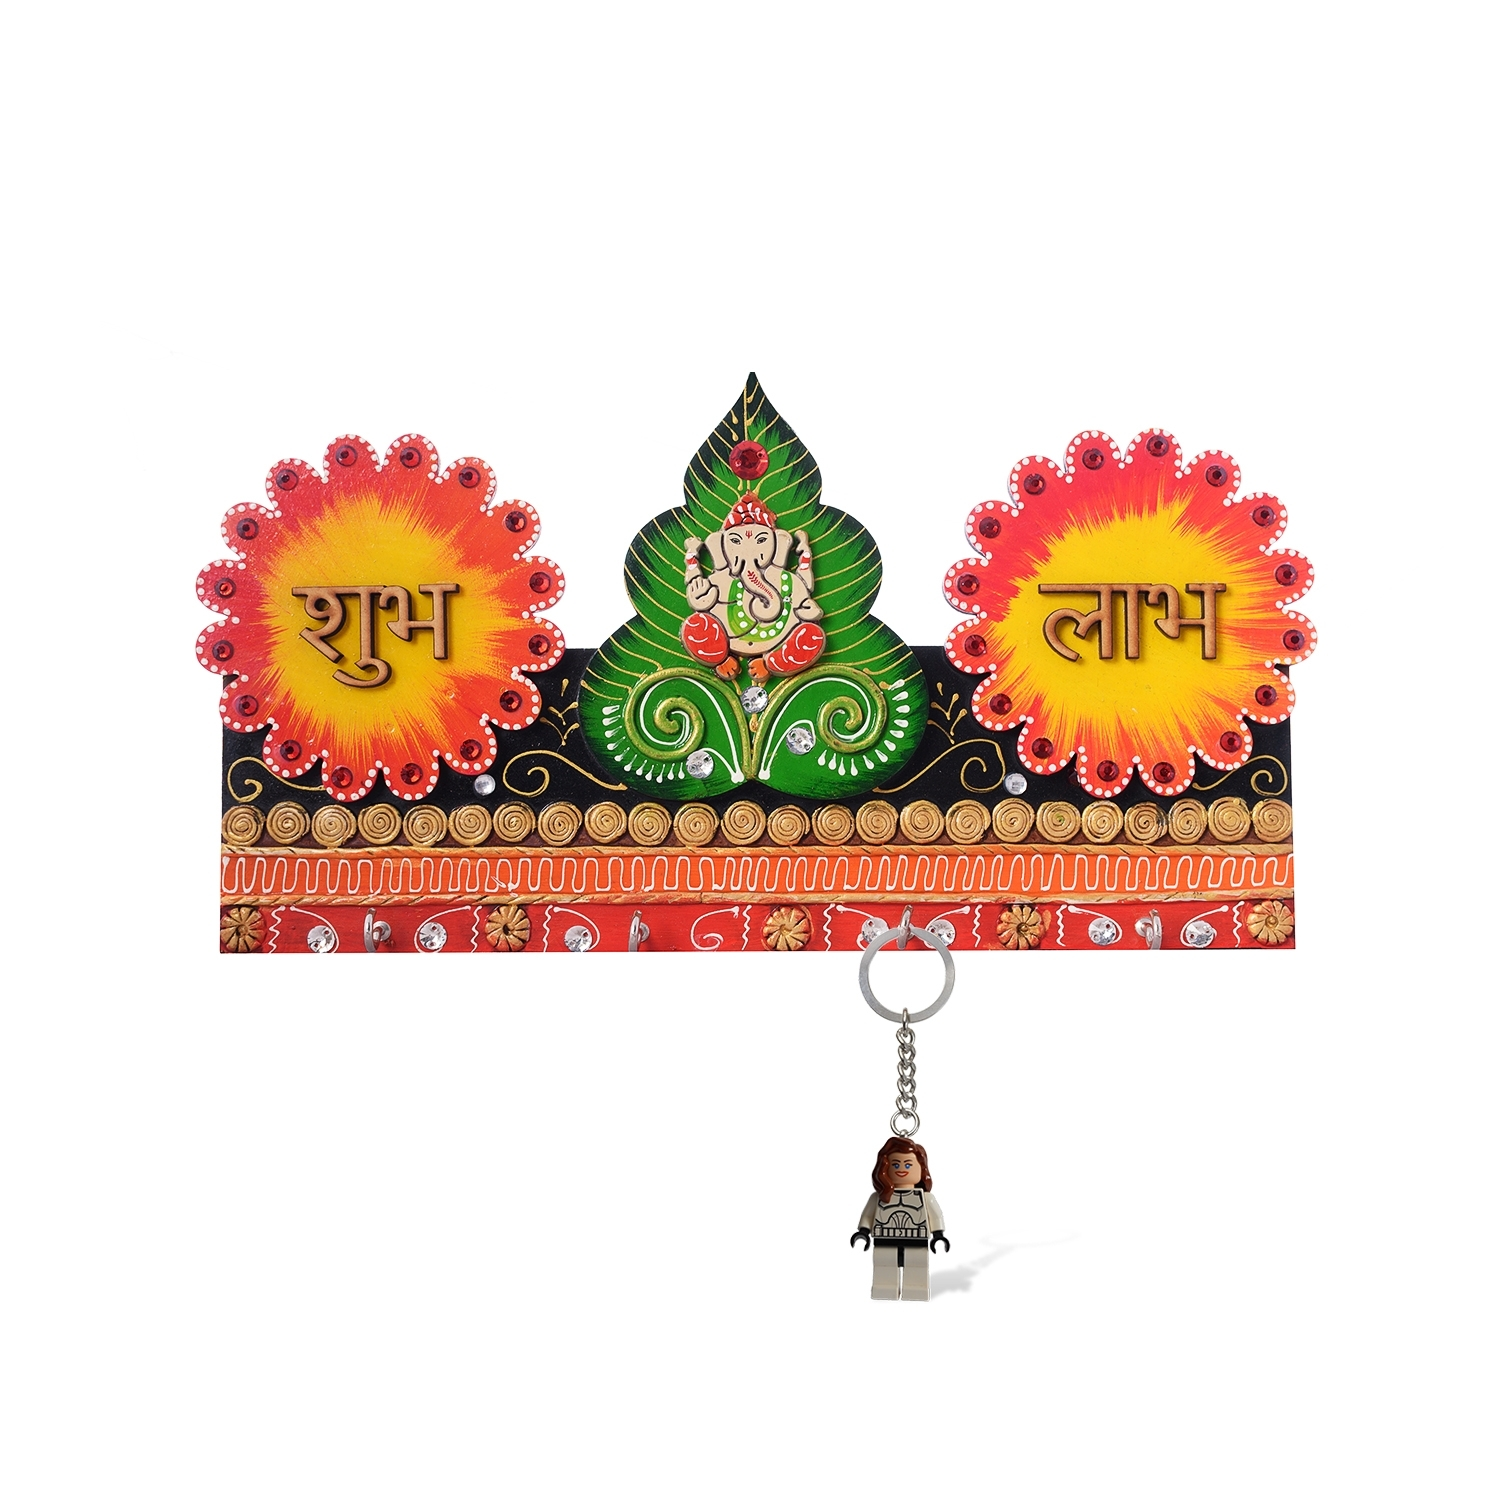 Lord Ganesha & Shubh Labh Papier-Mache Wooden Keyholder Indian Home Decor